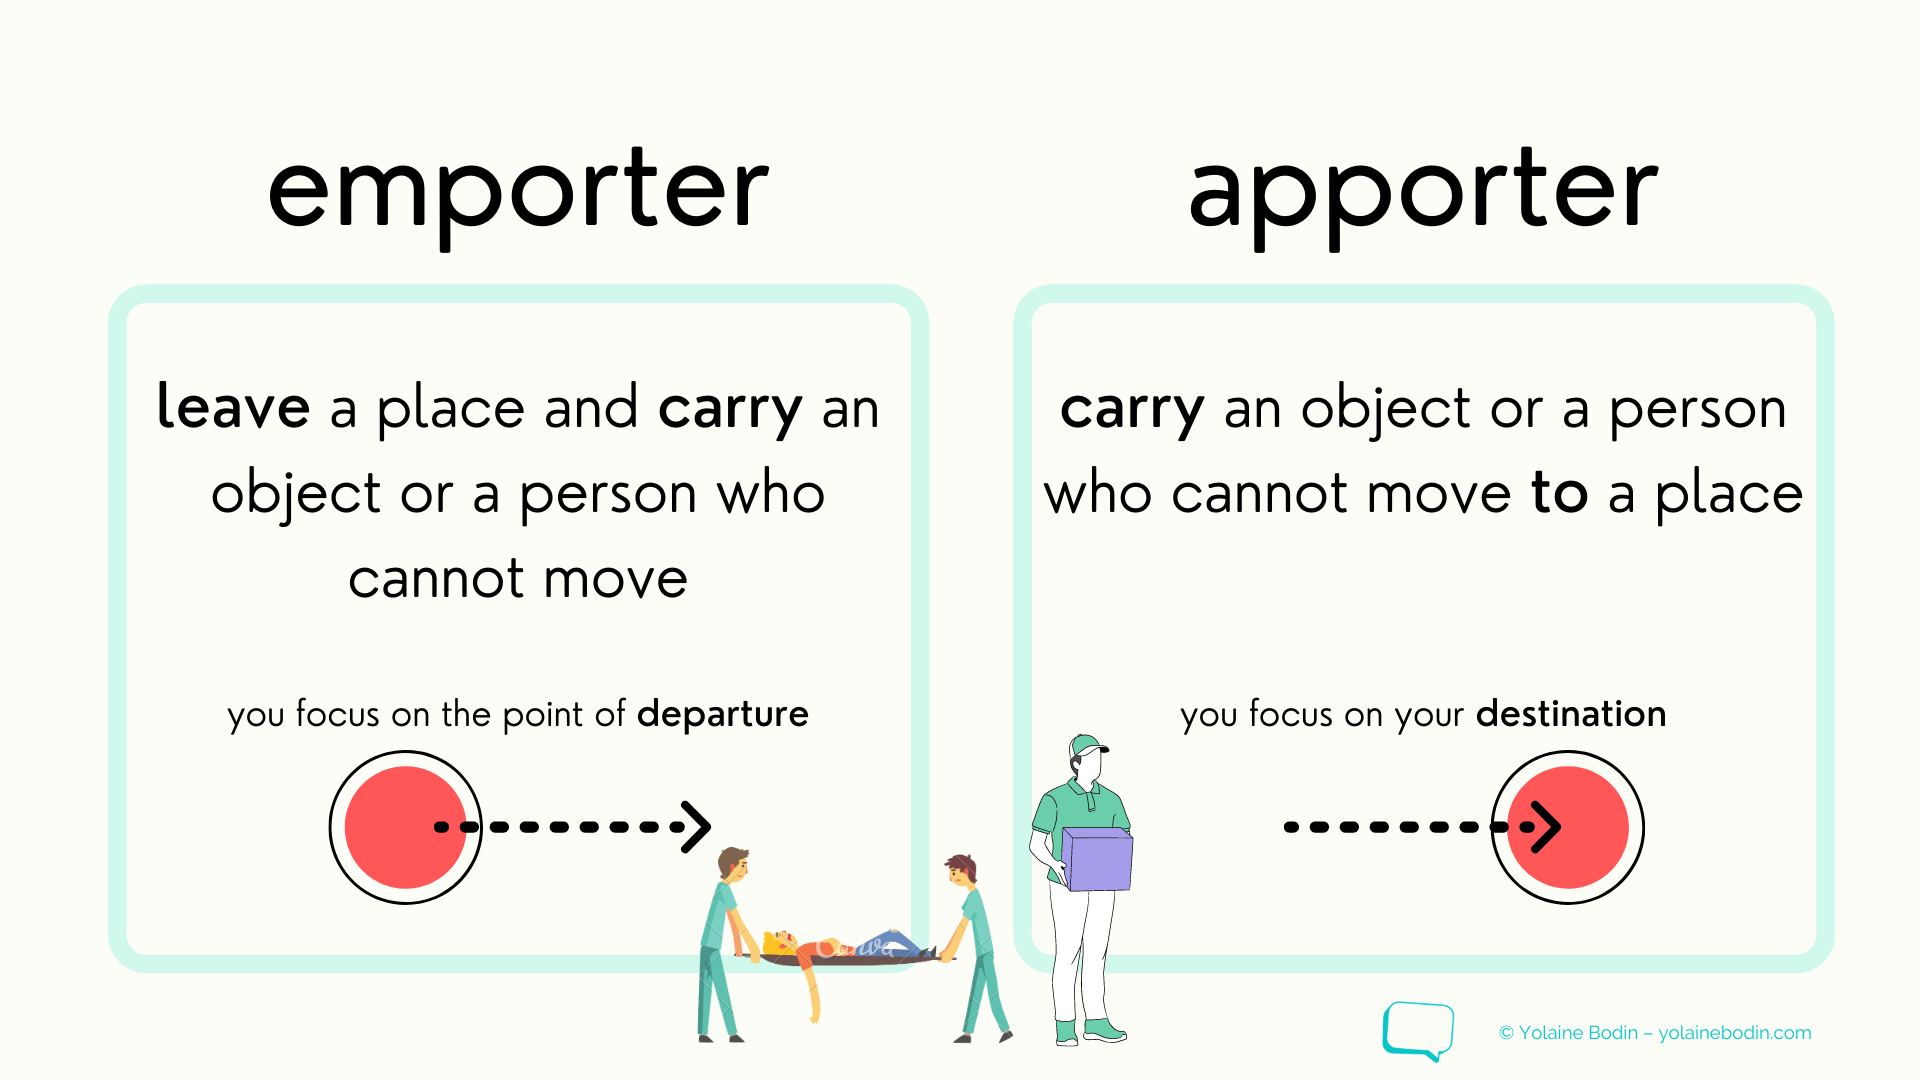 illustration to explain the difference between emporter and apporter